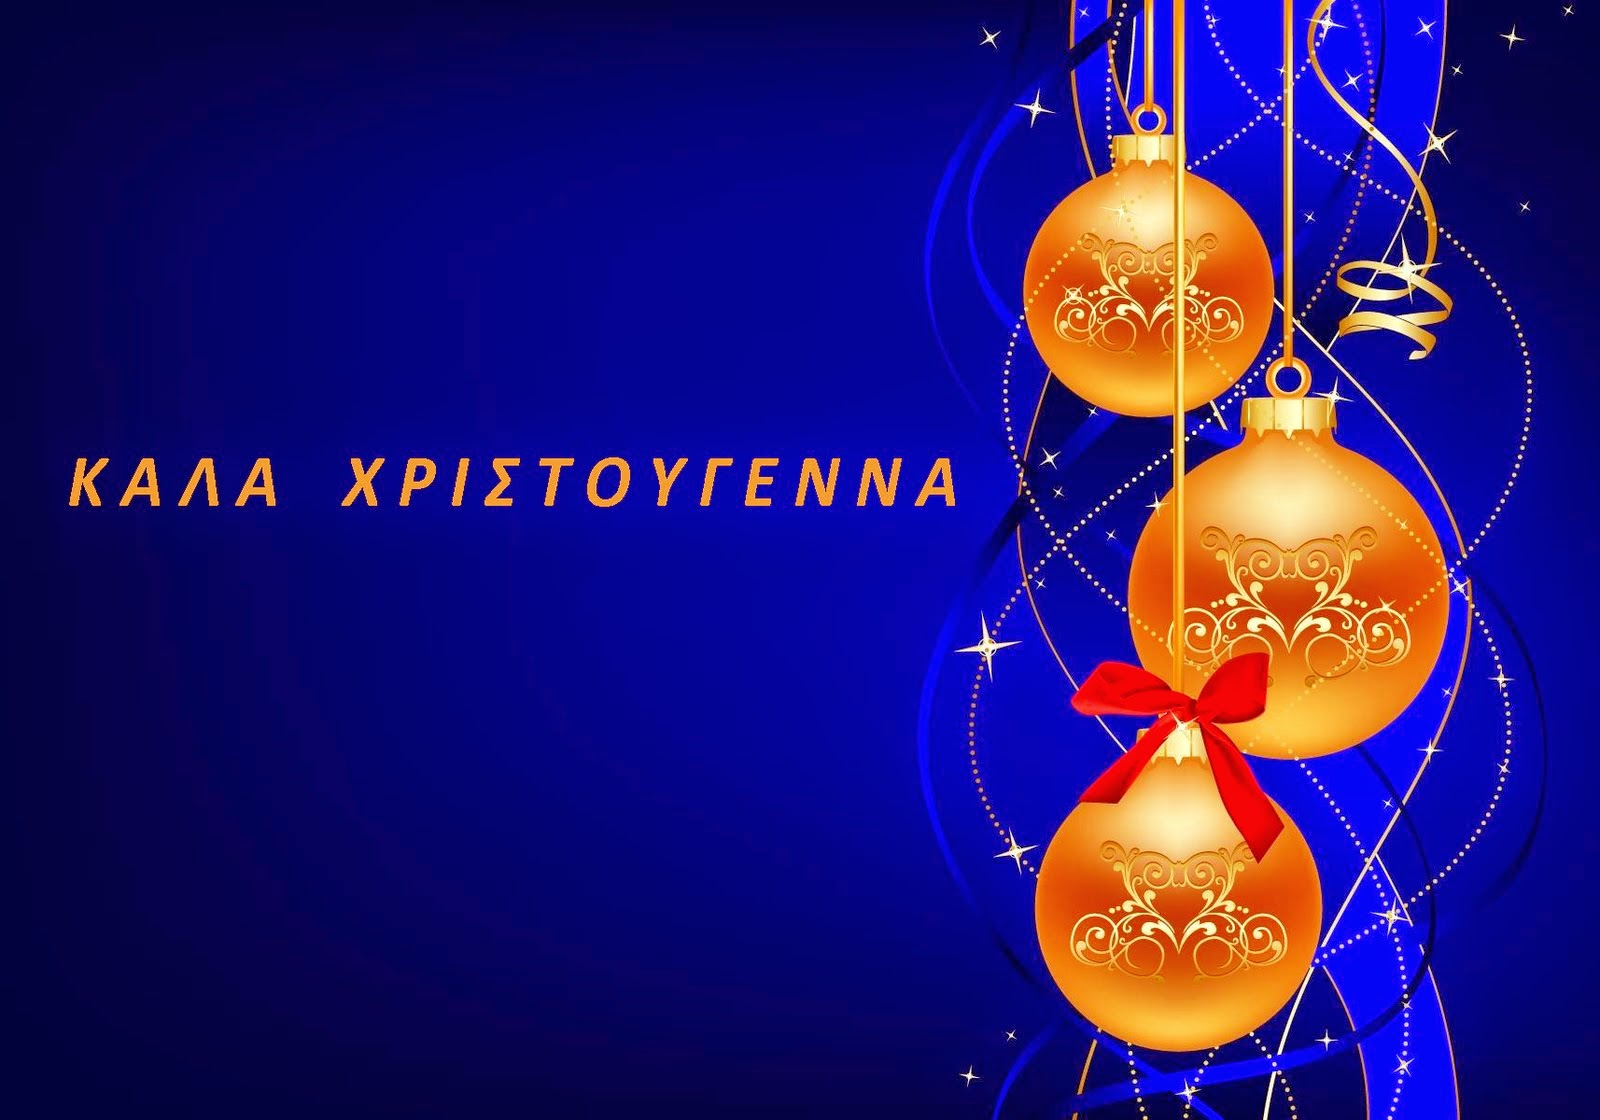 our warmest wishes for a very merry christmas - Merry Christmas In Greek Language